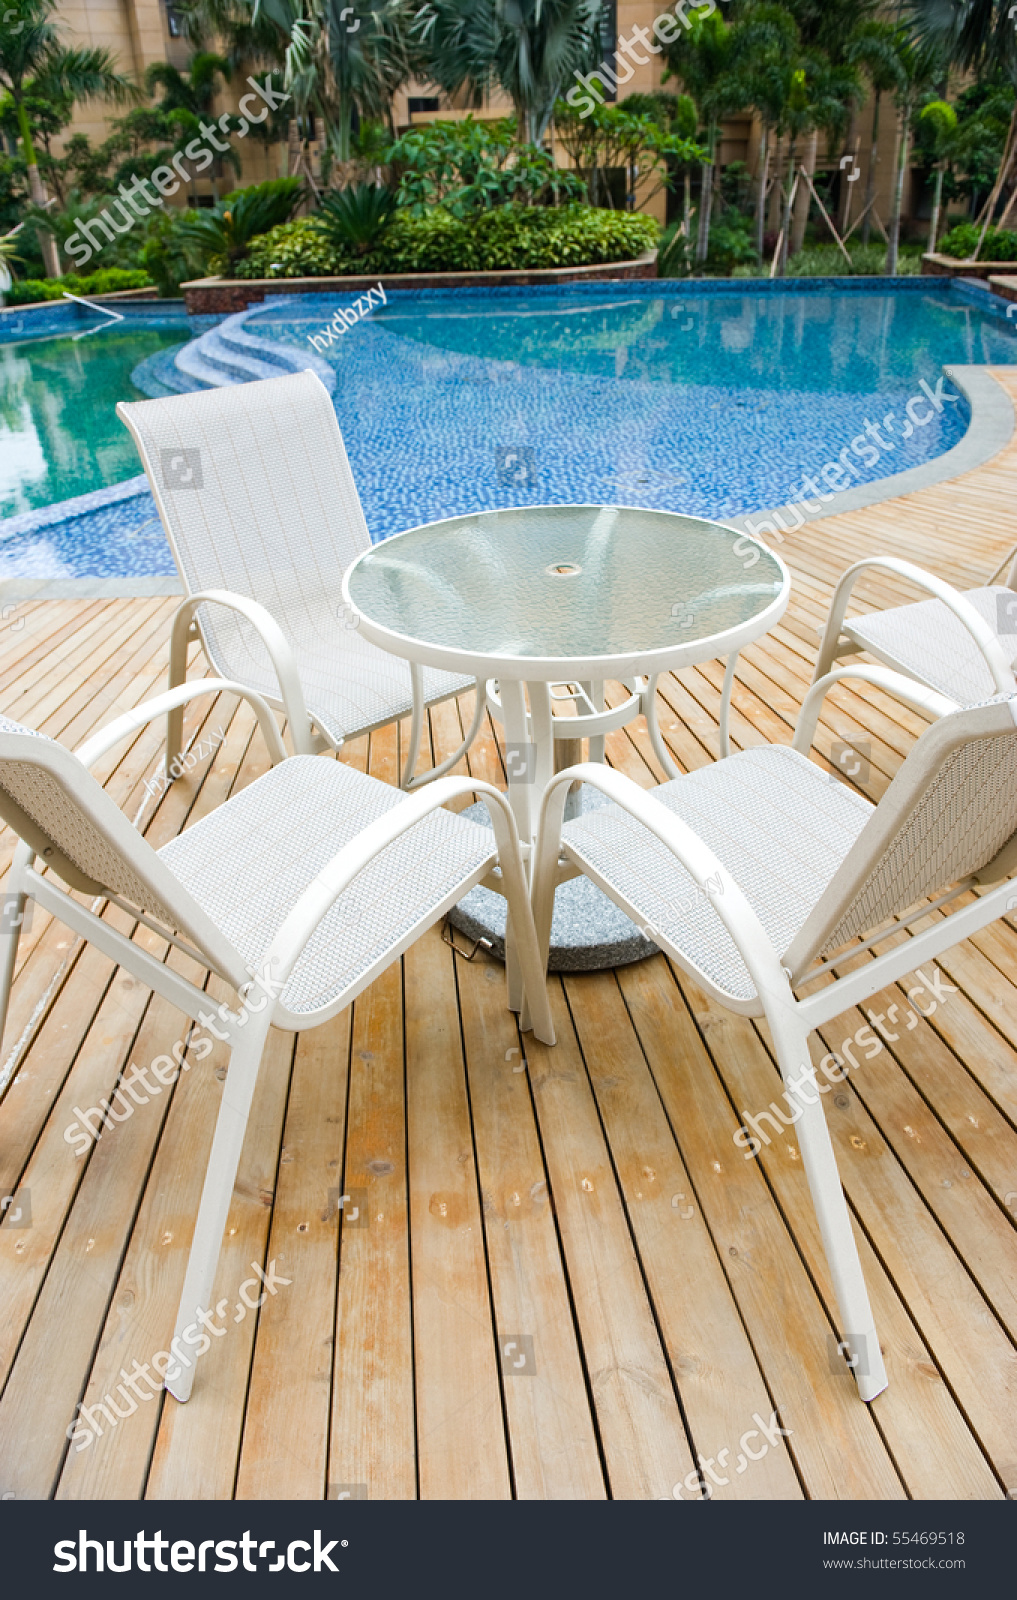 Chairs For Pool Chairs Tables Next Swimming Pool Stock Photo Edit Now 55469518